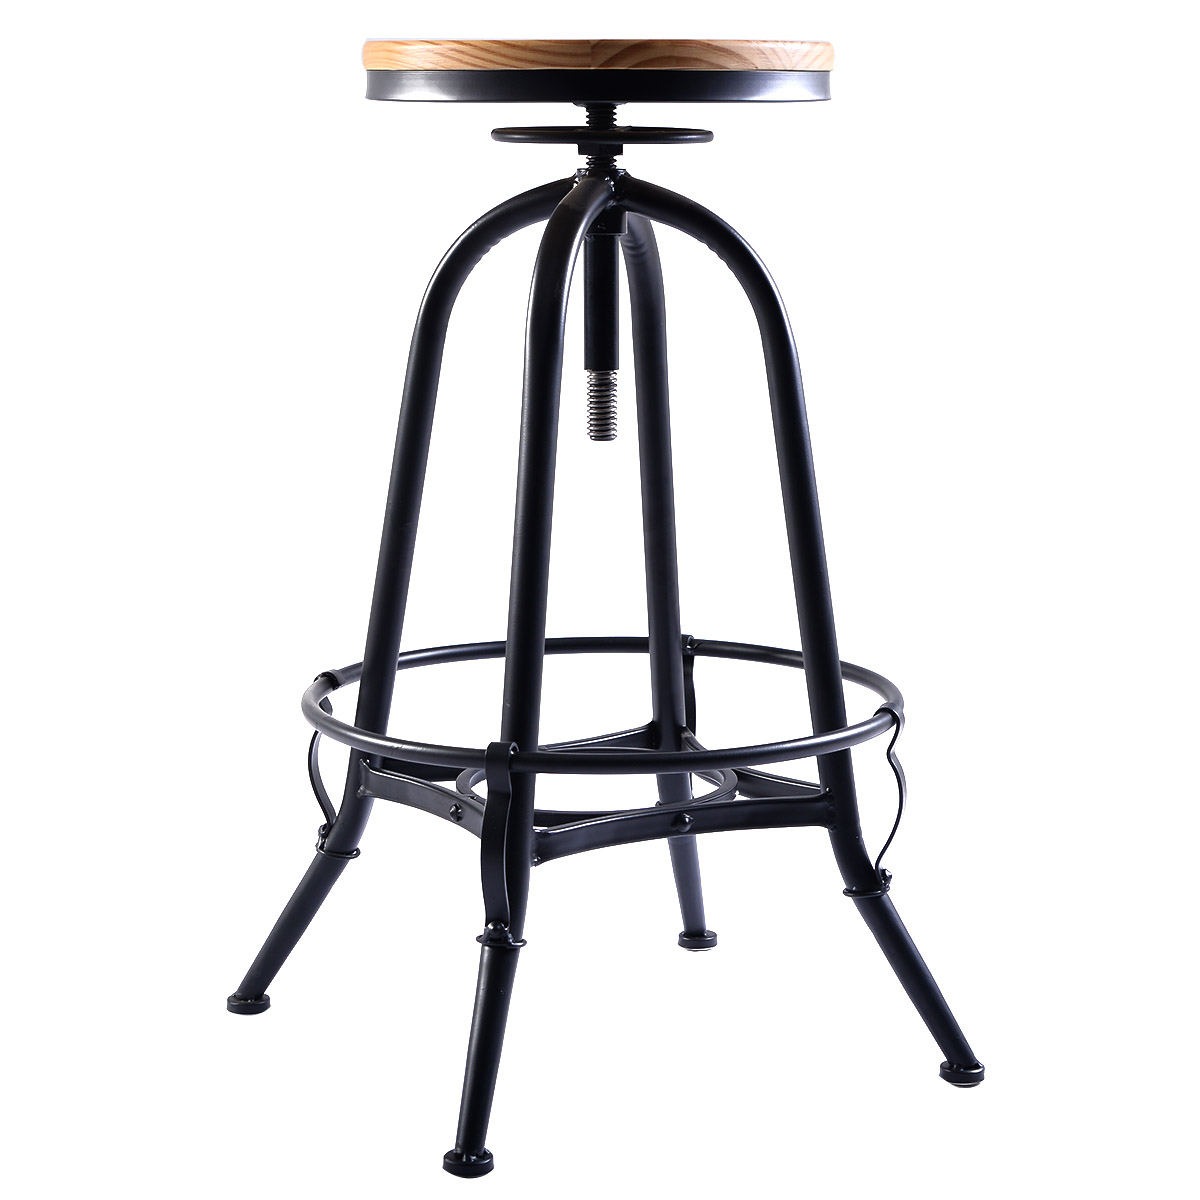 Costway Vintage Bar Stool Metal Frame Wood Top Adjustable Height Swivel Industrial - Walmart.com  sc 1 st  Walmart : bar stools industrial - islam-shia.org